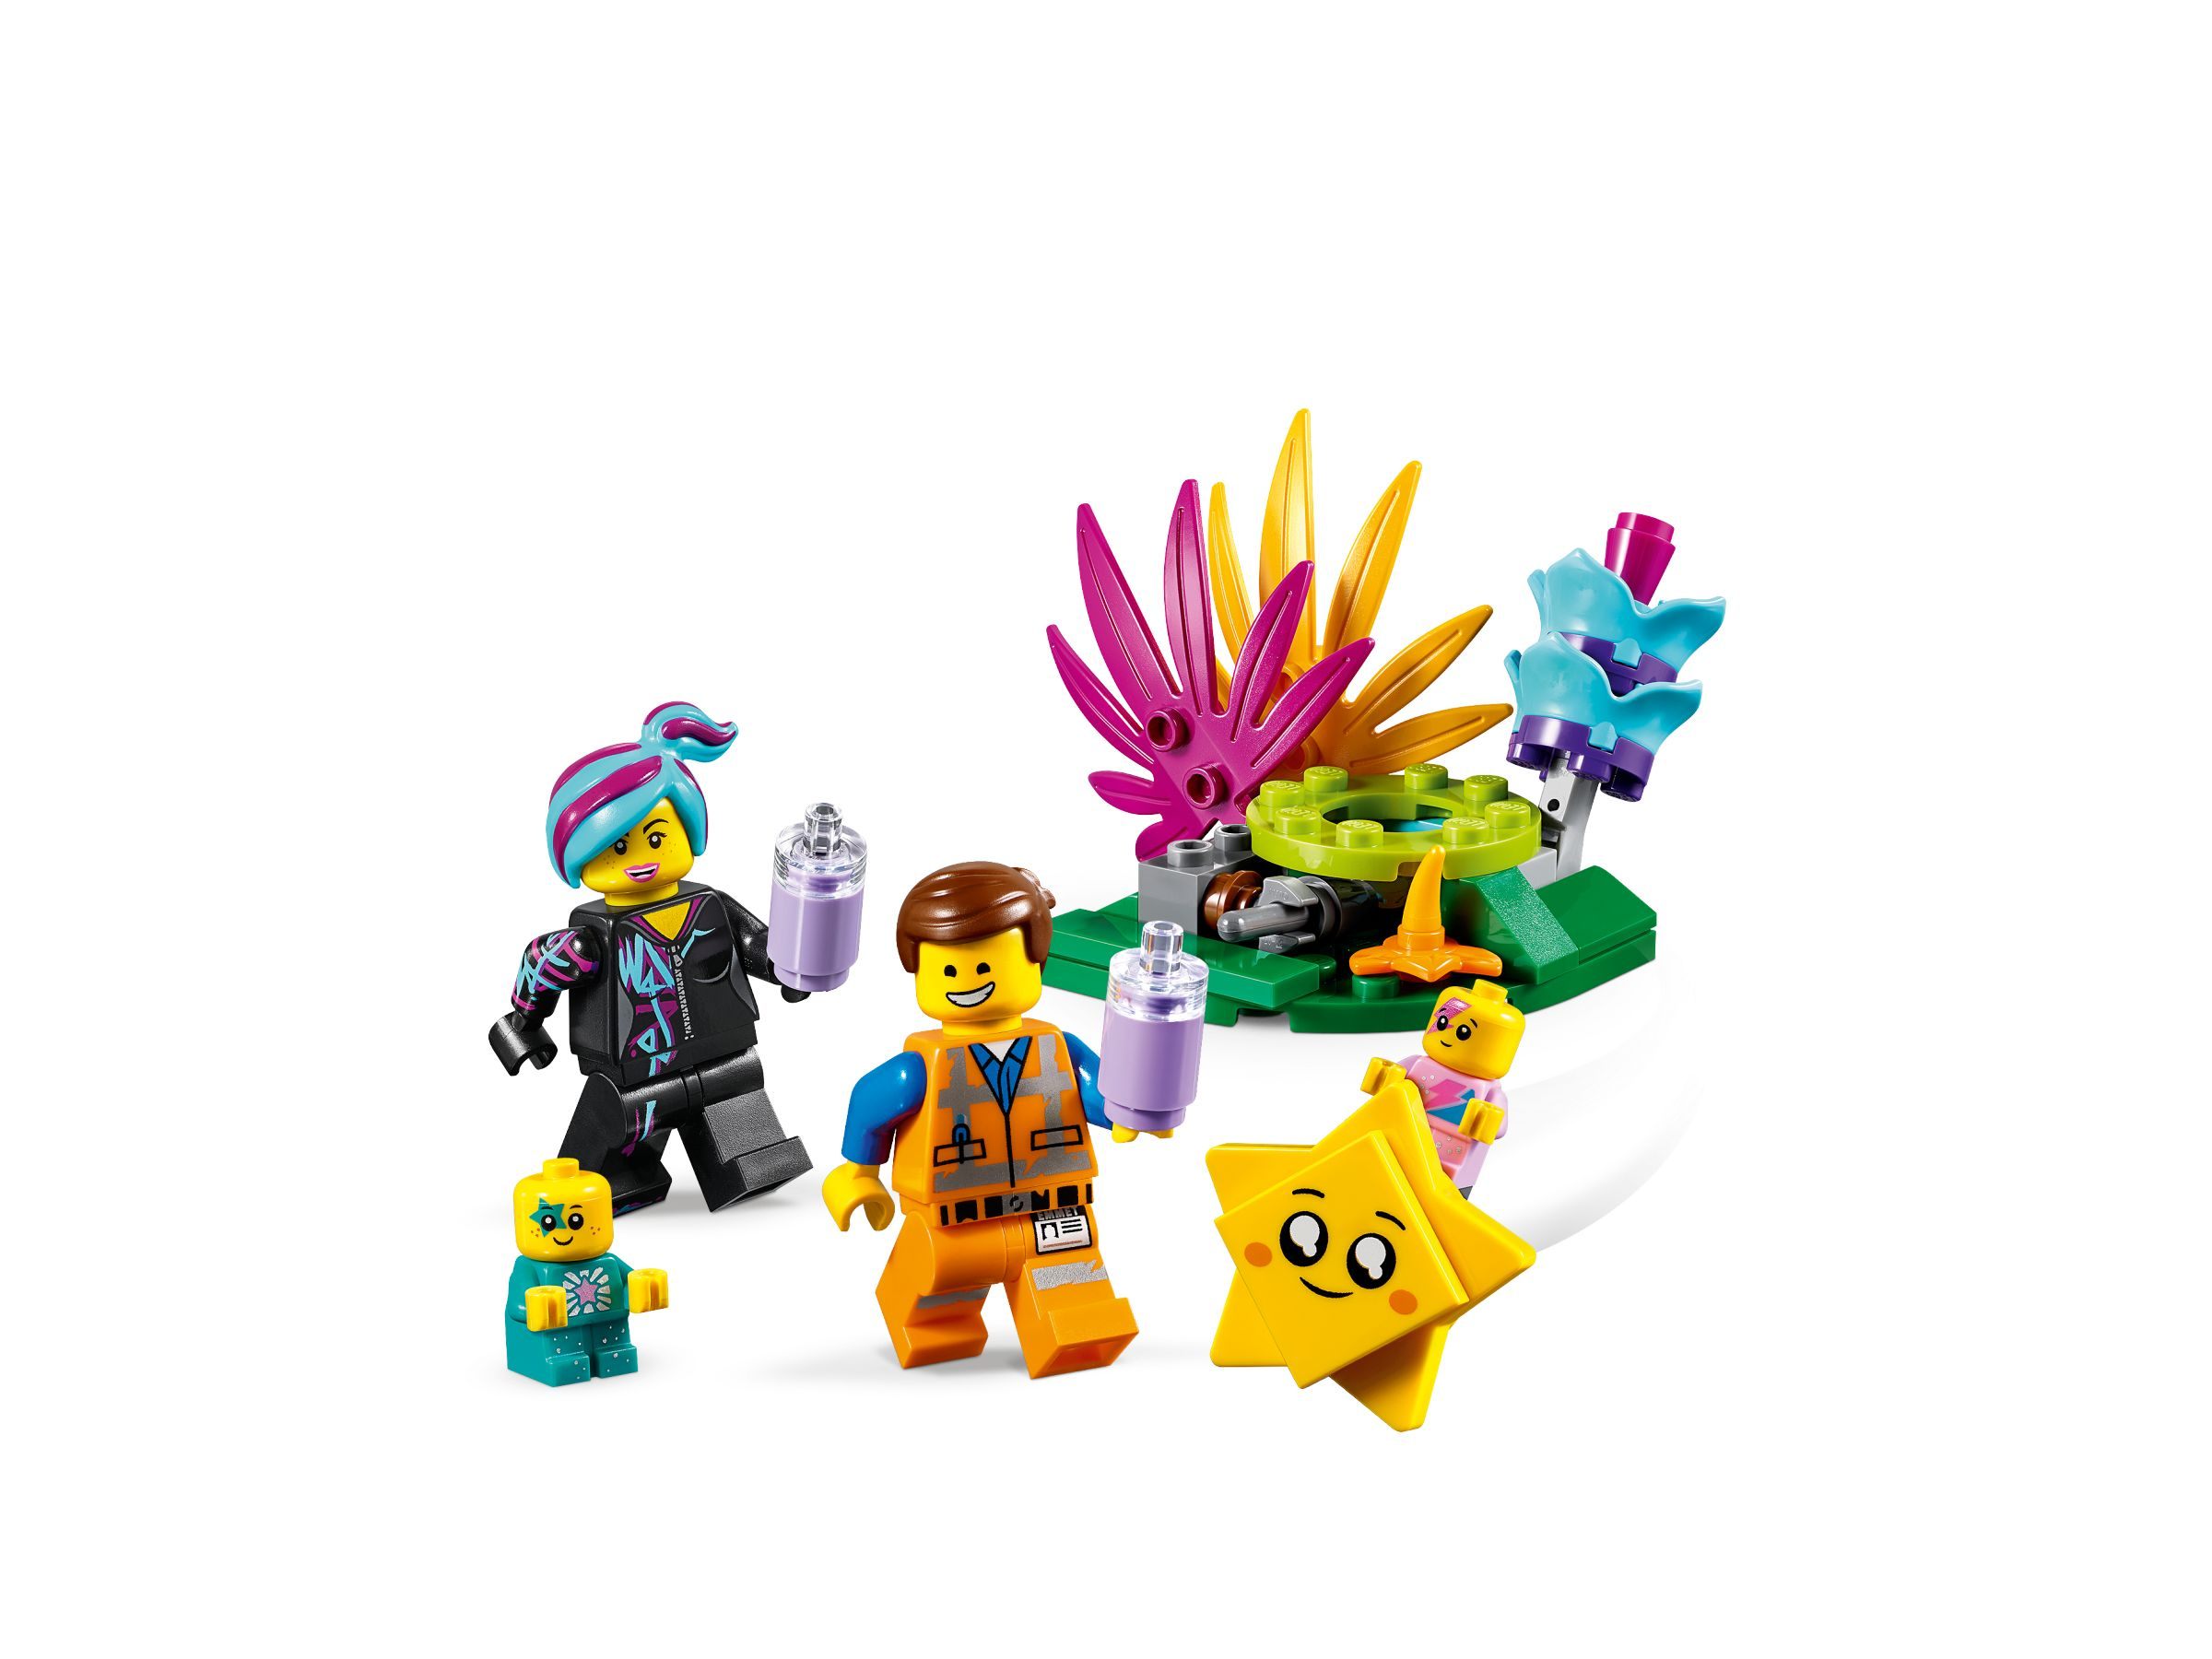 LEGO The Lego Movie 2 70847 Guten Morgen, Glitzerbabys! LEGO_70847_alt2.jpg